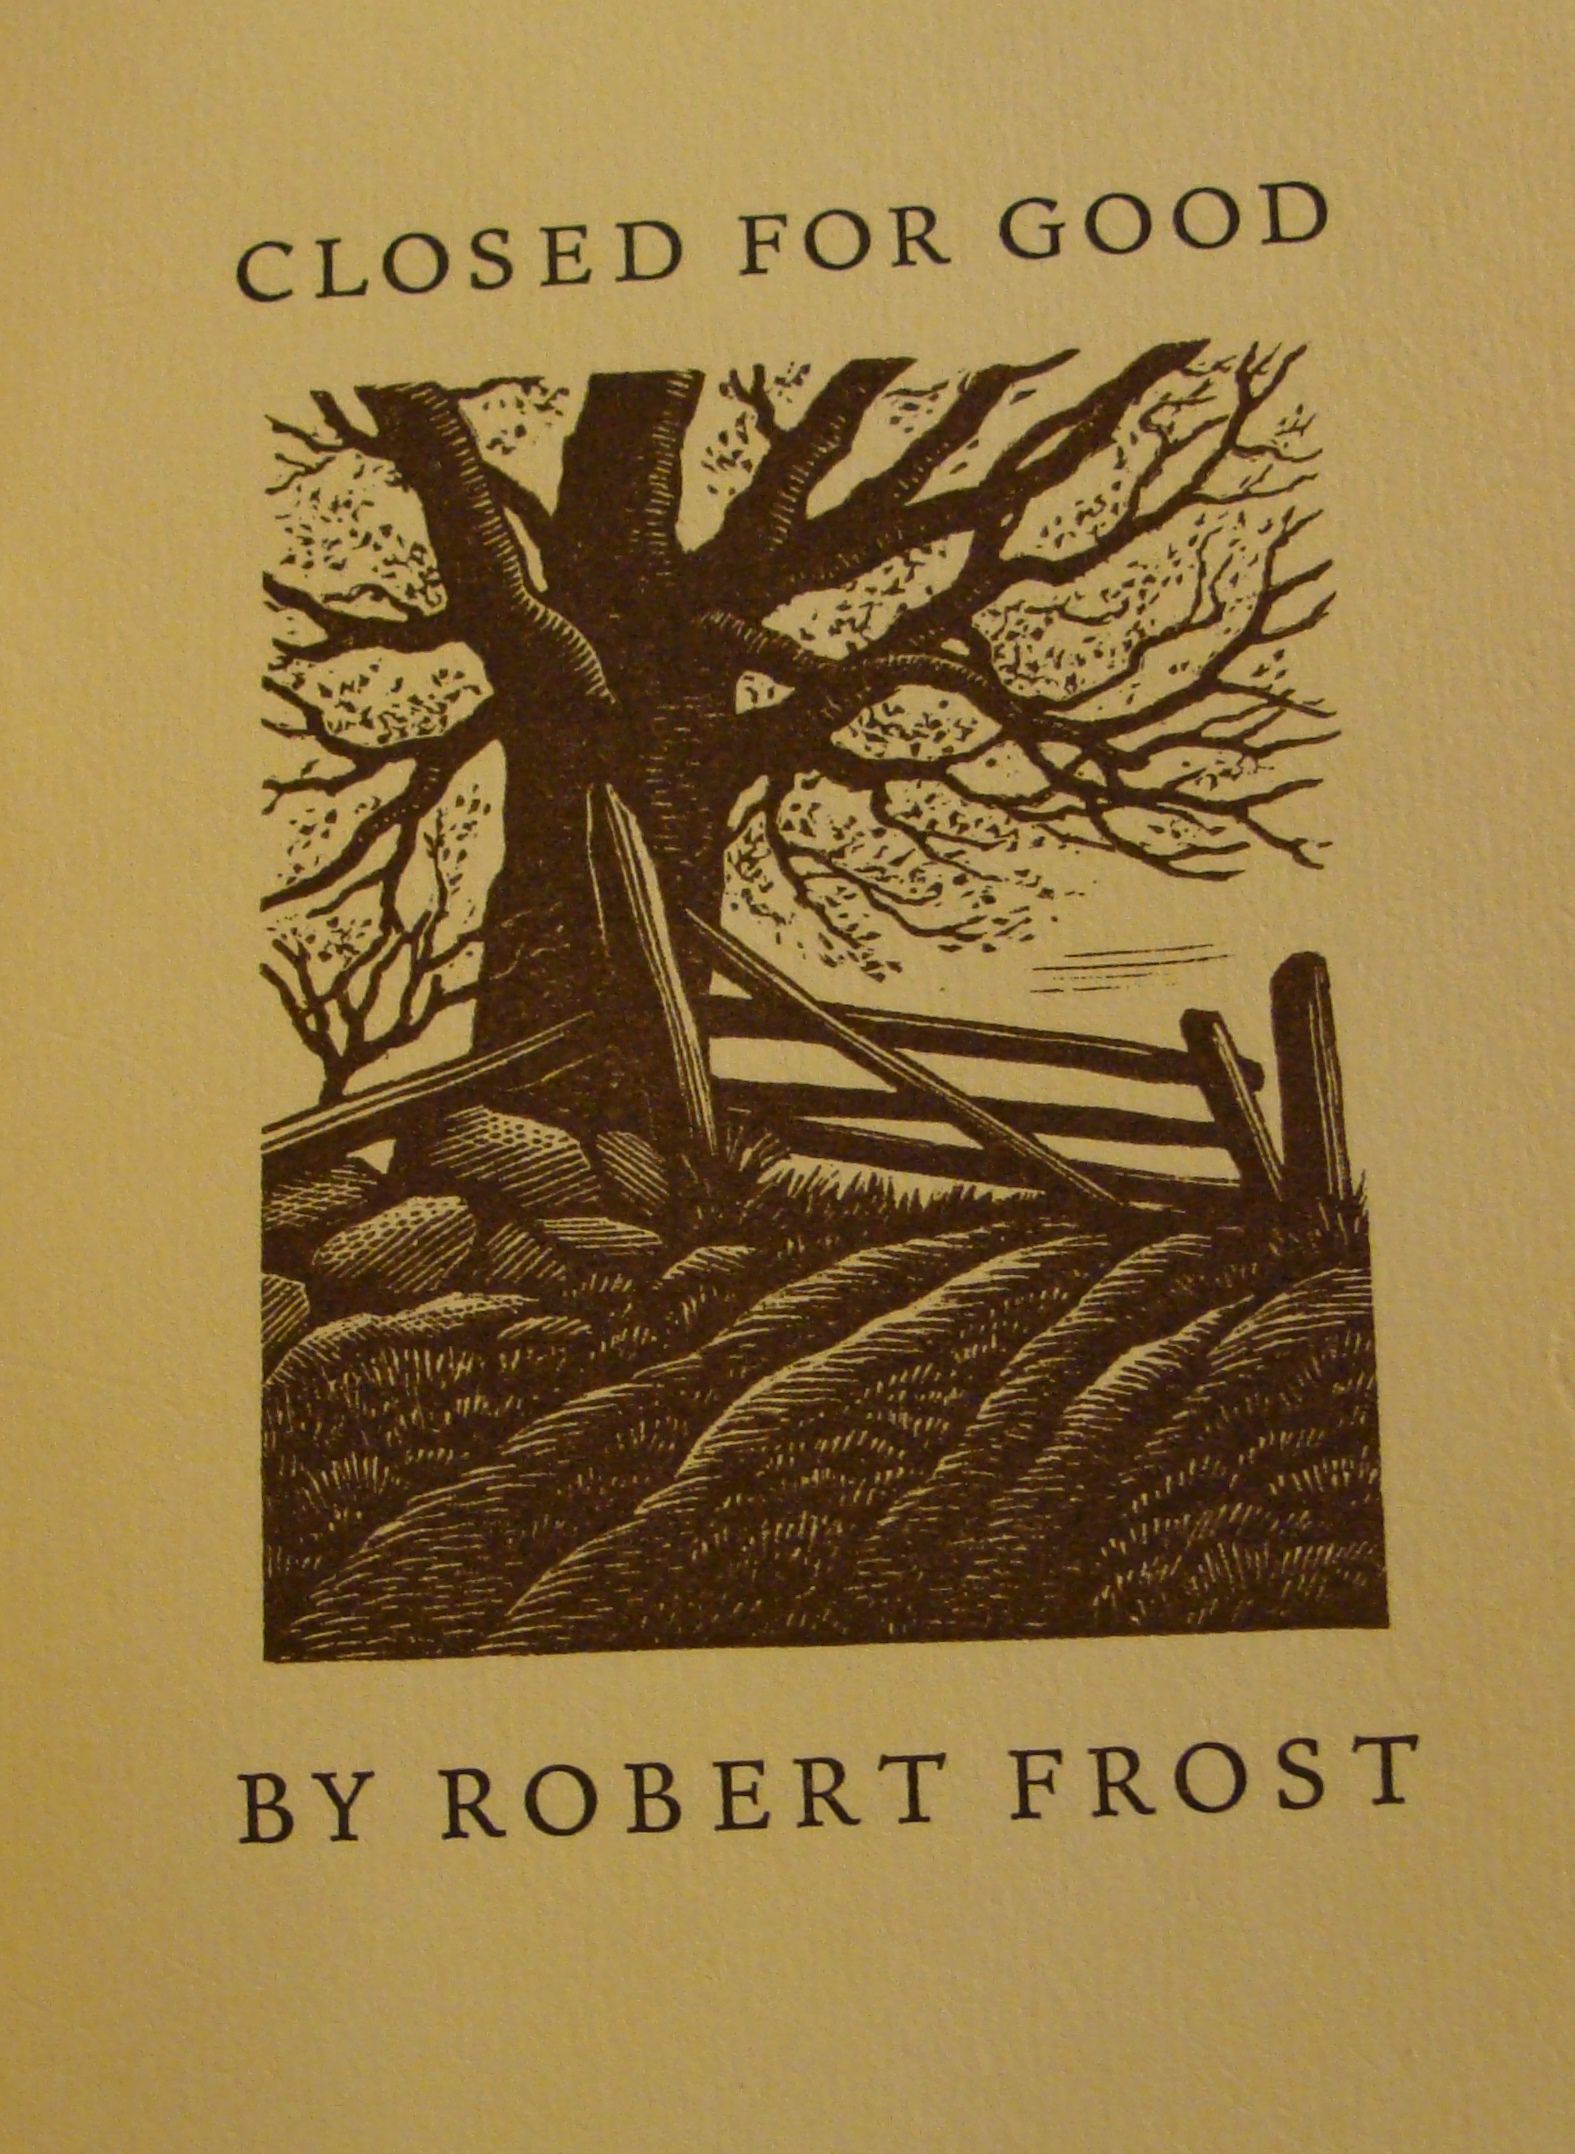 Christmas Greetings From Robert Frost From The Catbird